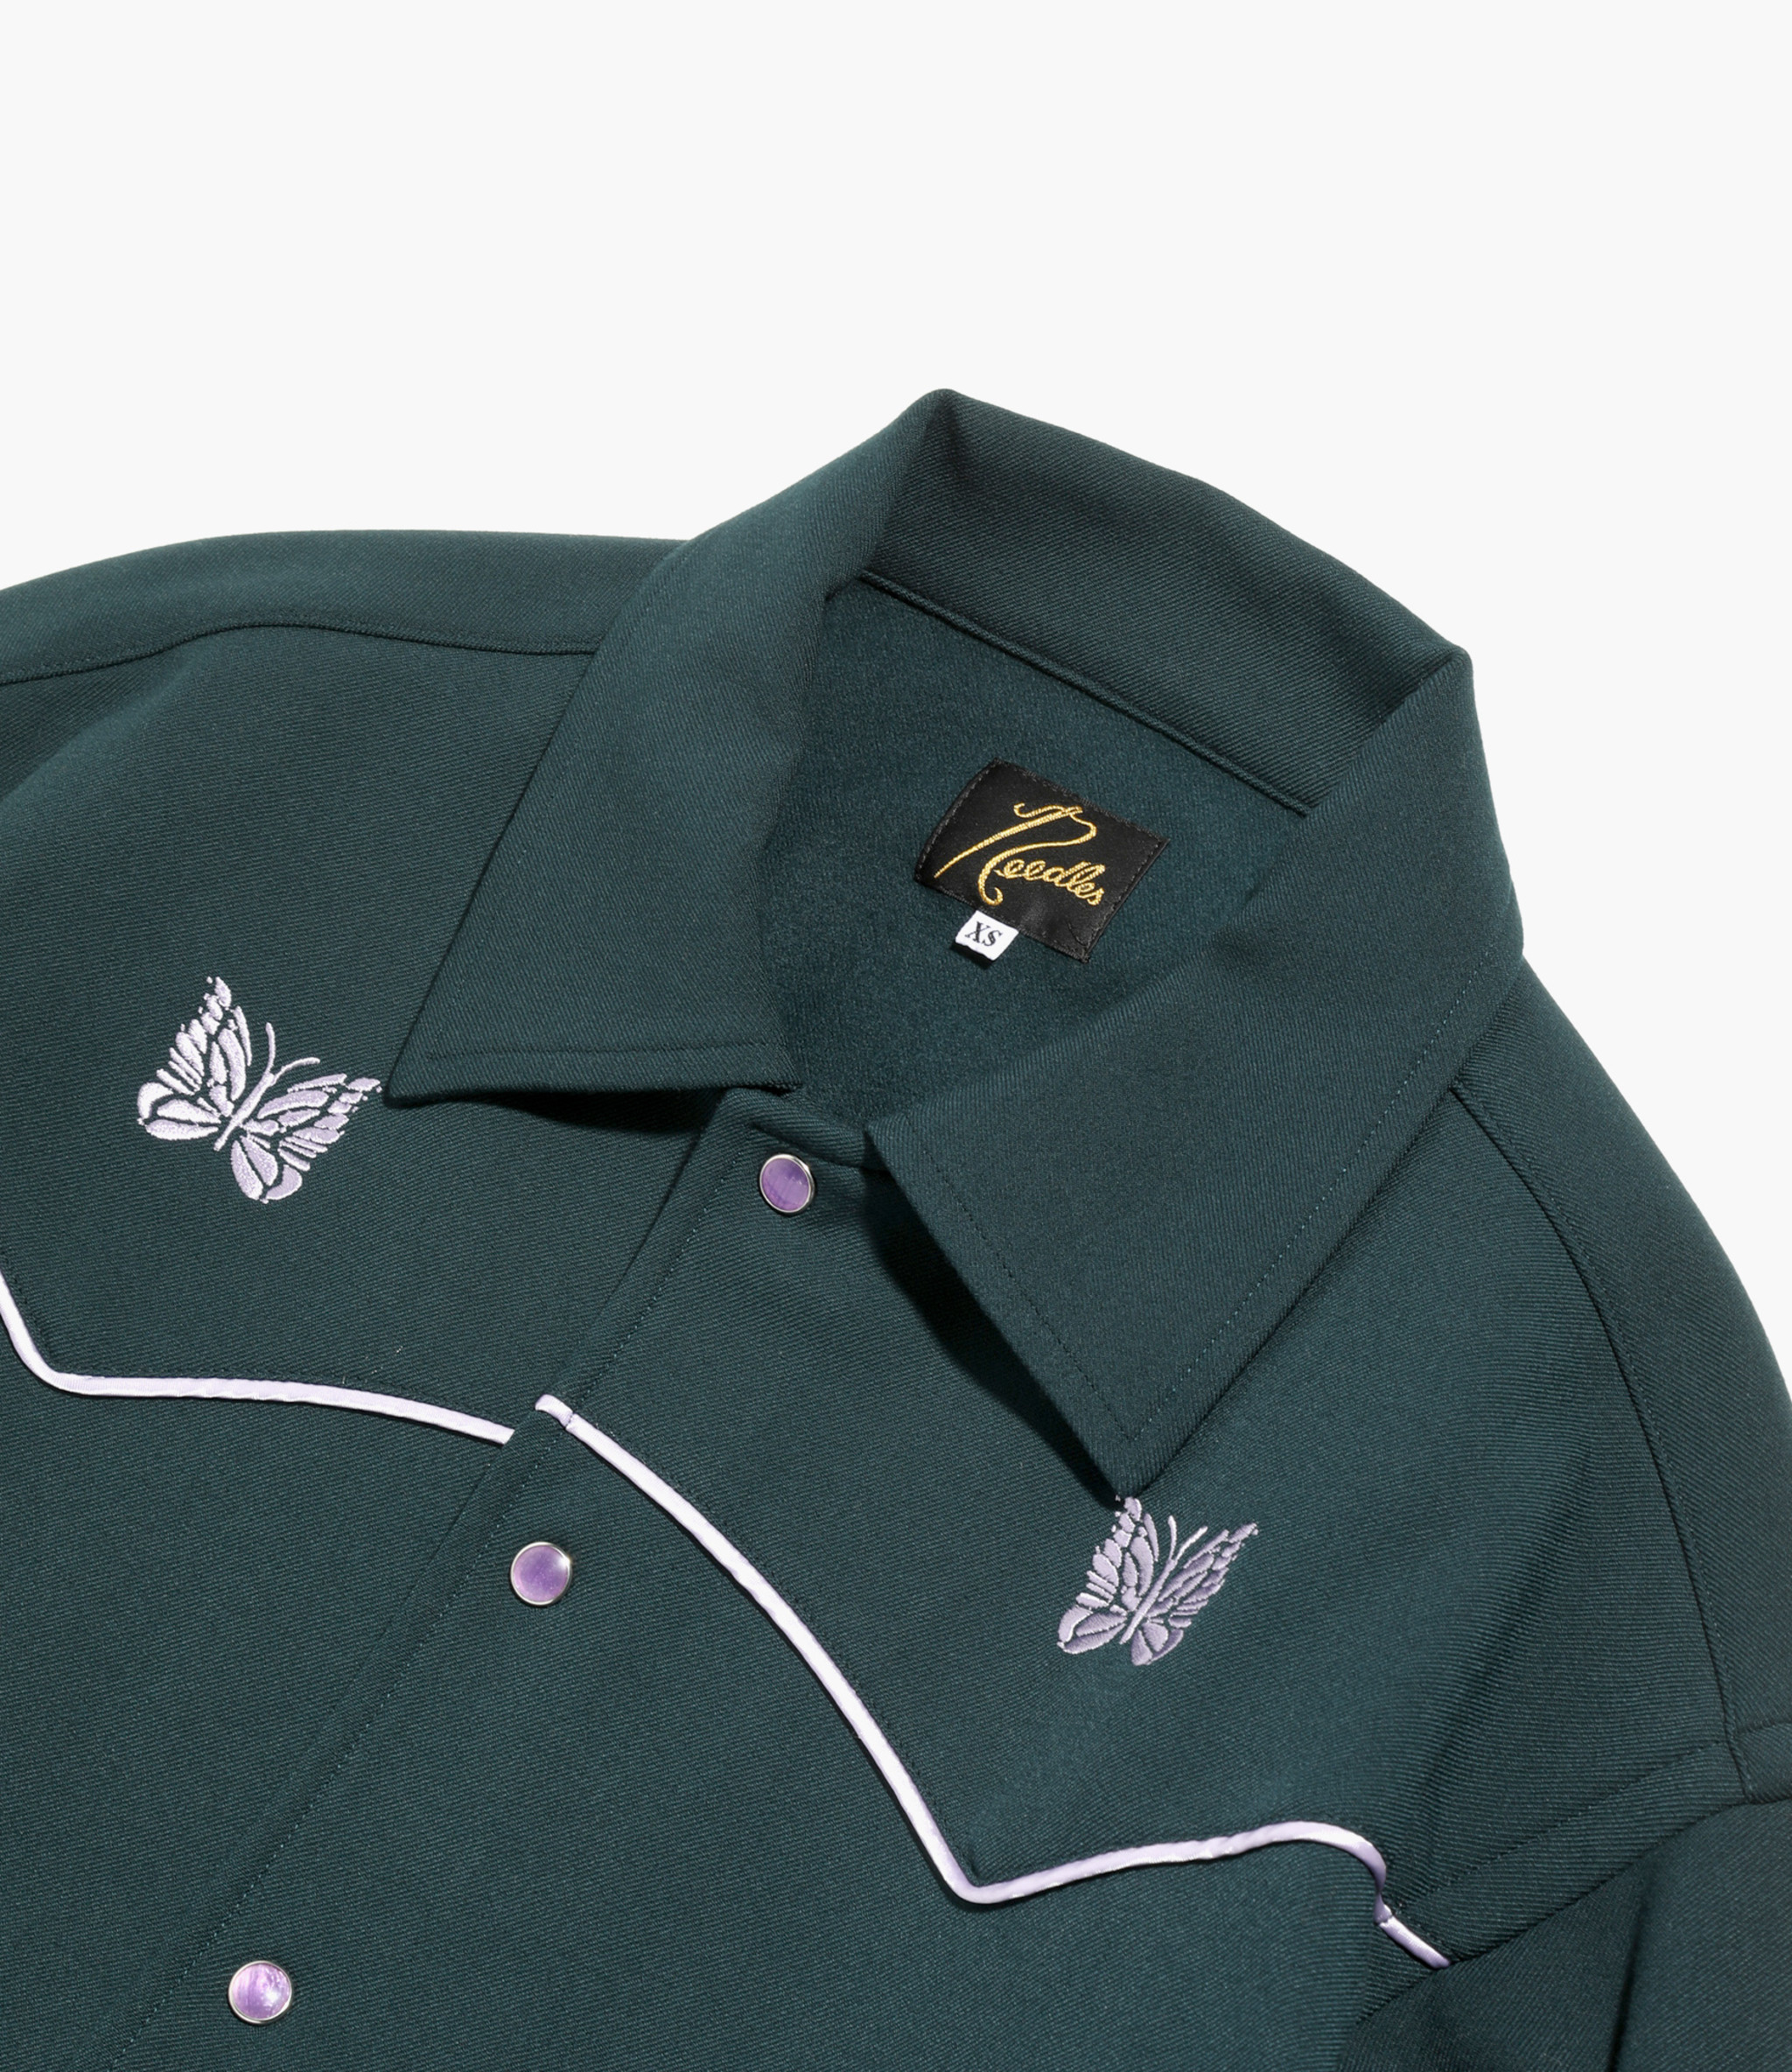 Needles Piping Cowboy Jacket - Pe/R/Pu Twill - Green